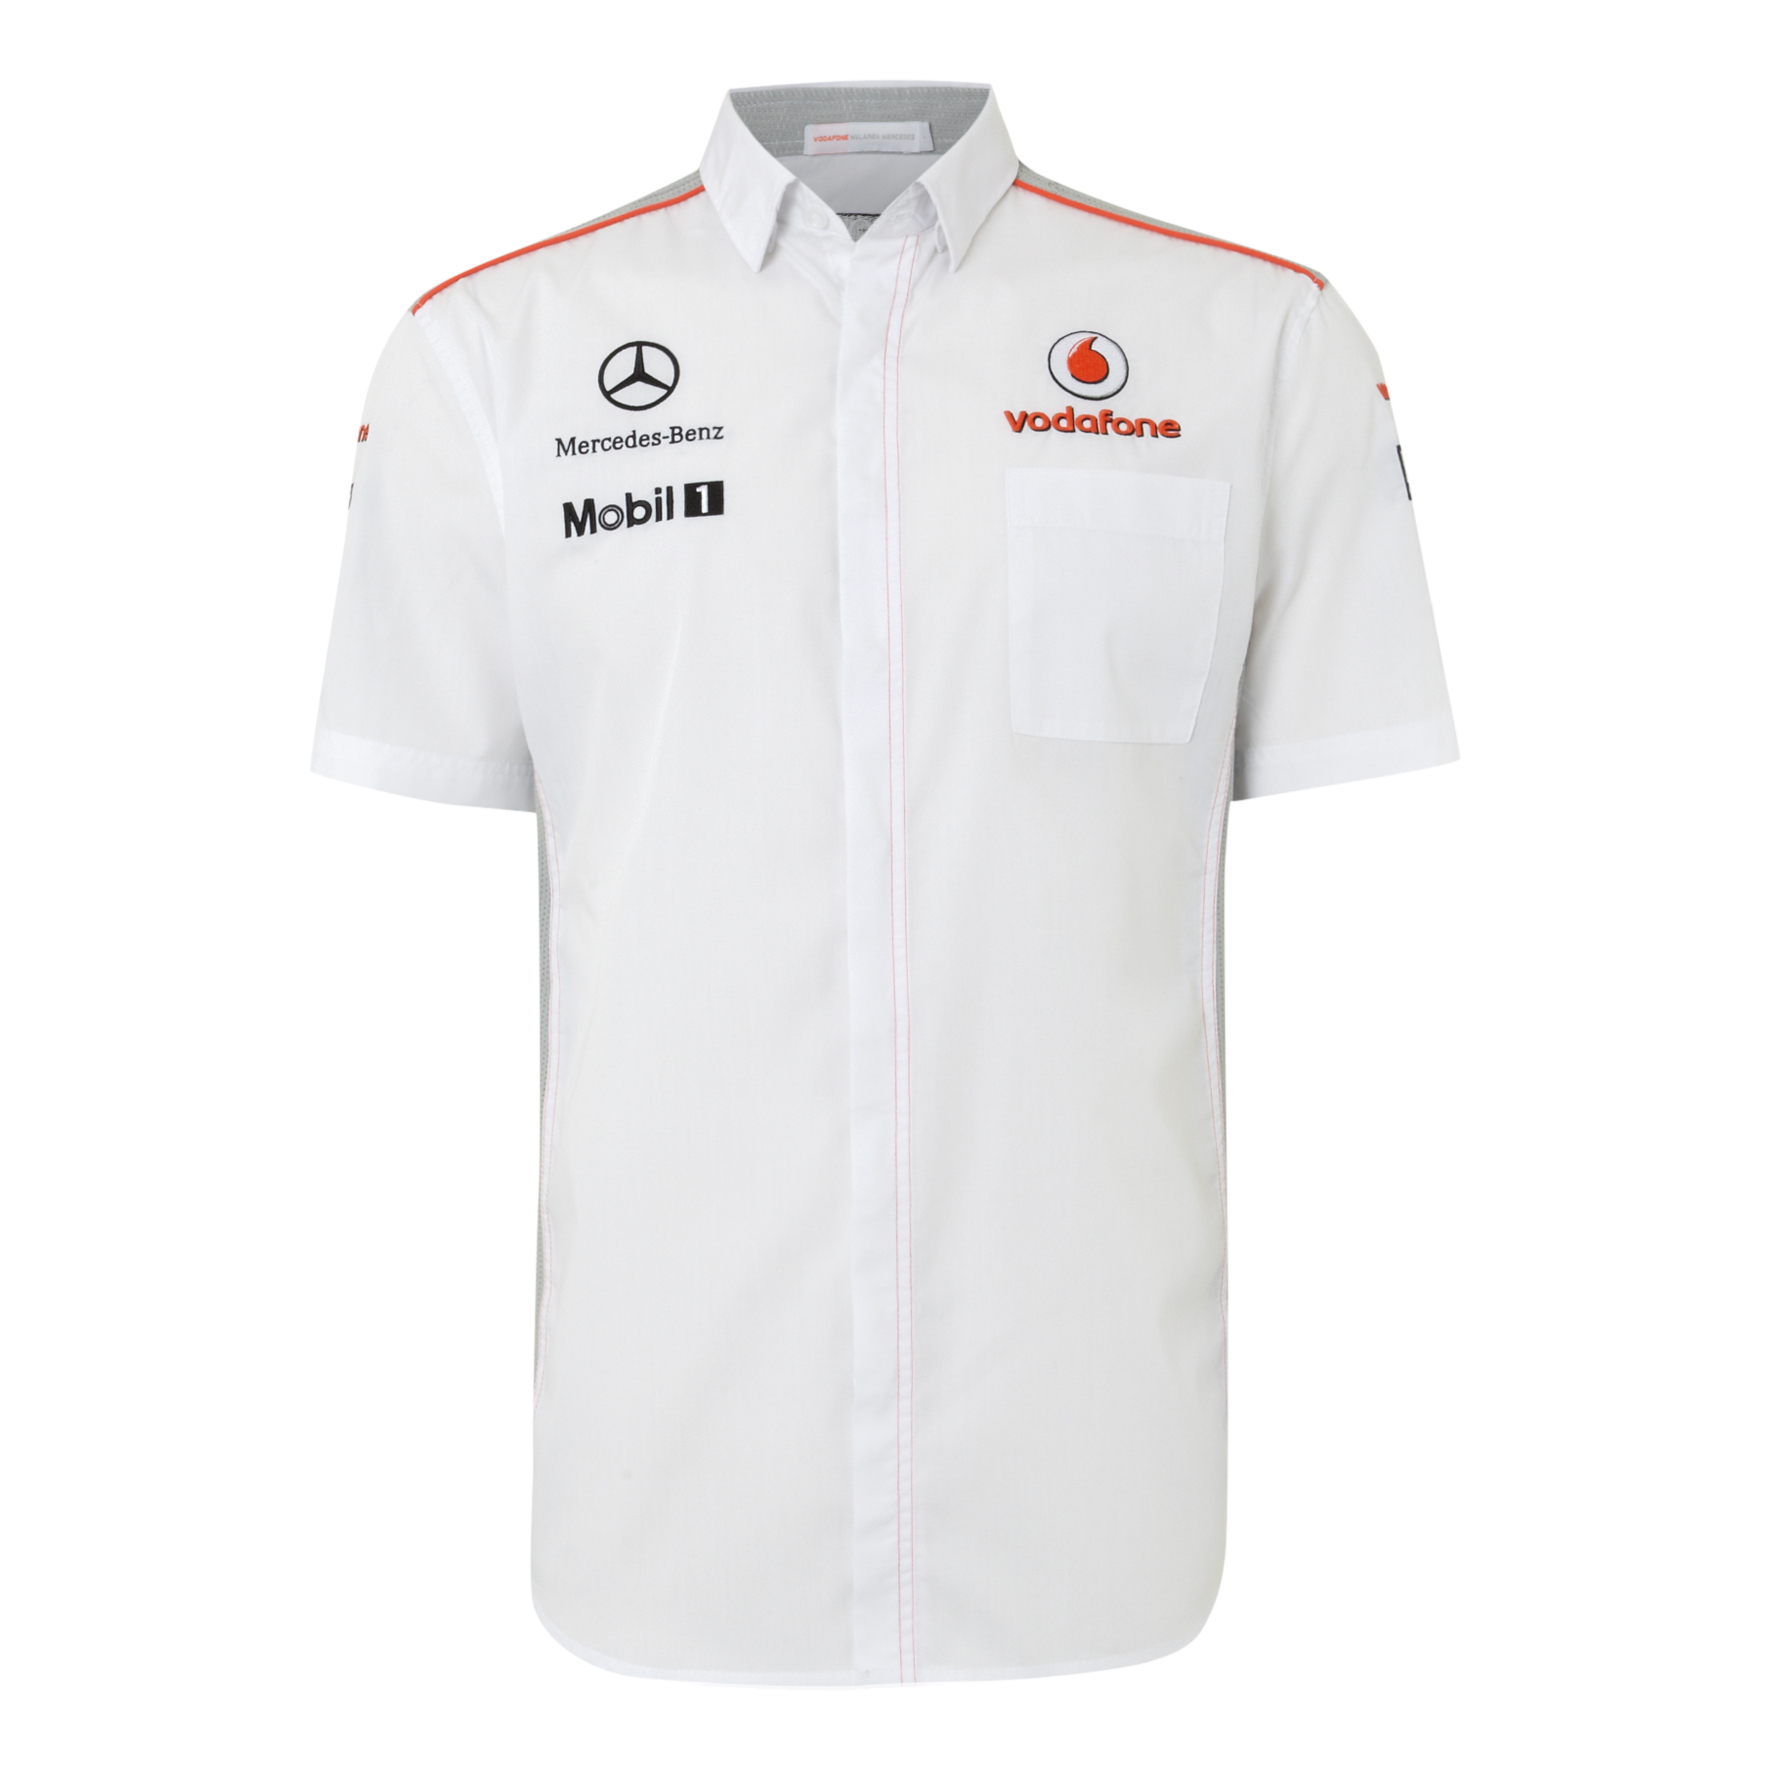 Vodafone McLaren Mercedes 2013 Team Shirt